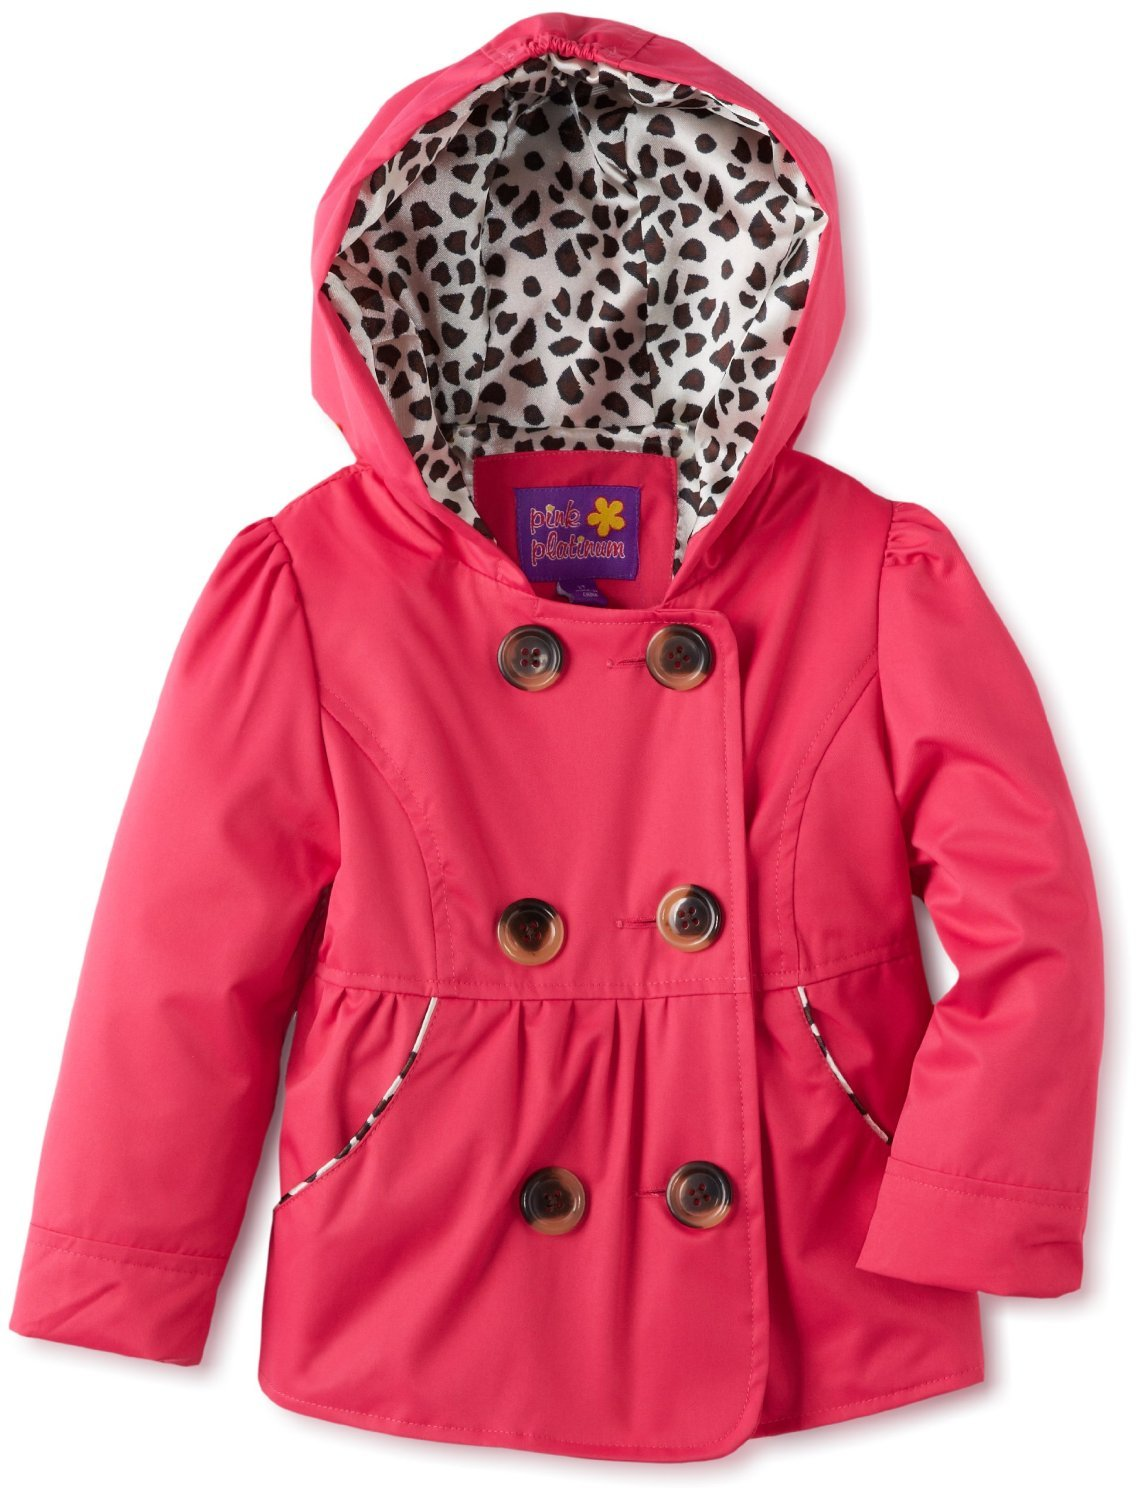 Shop for girls coats online at truedfil3gz.gq Shipping $35+ · Everyday Savings · Same Day Store Pick-Up · Expect More. Pay truedfil3gz.gq: Kids Active wear, Kids Jeans, Kids Polos, Kids School Uniform, Kids Socks.